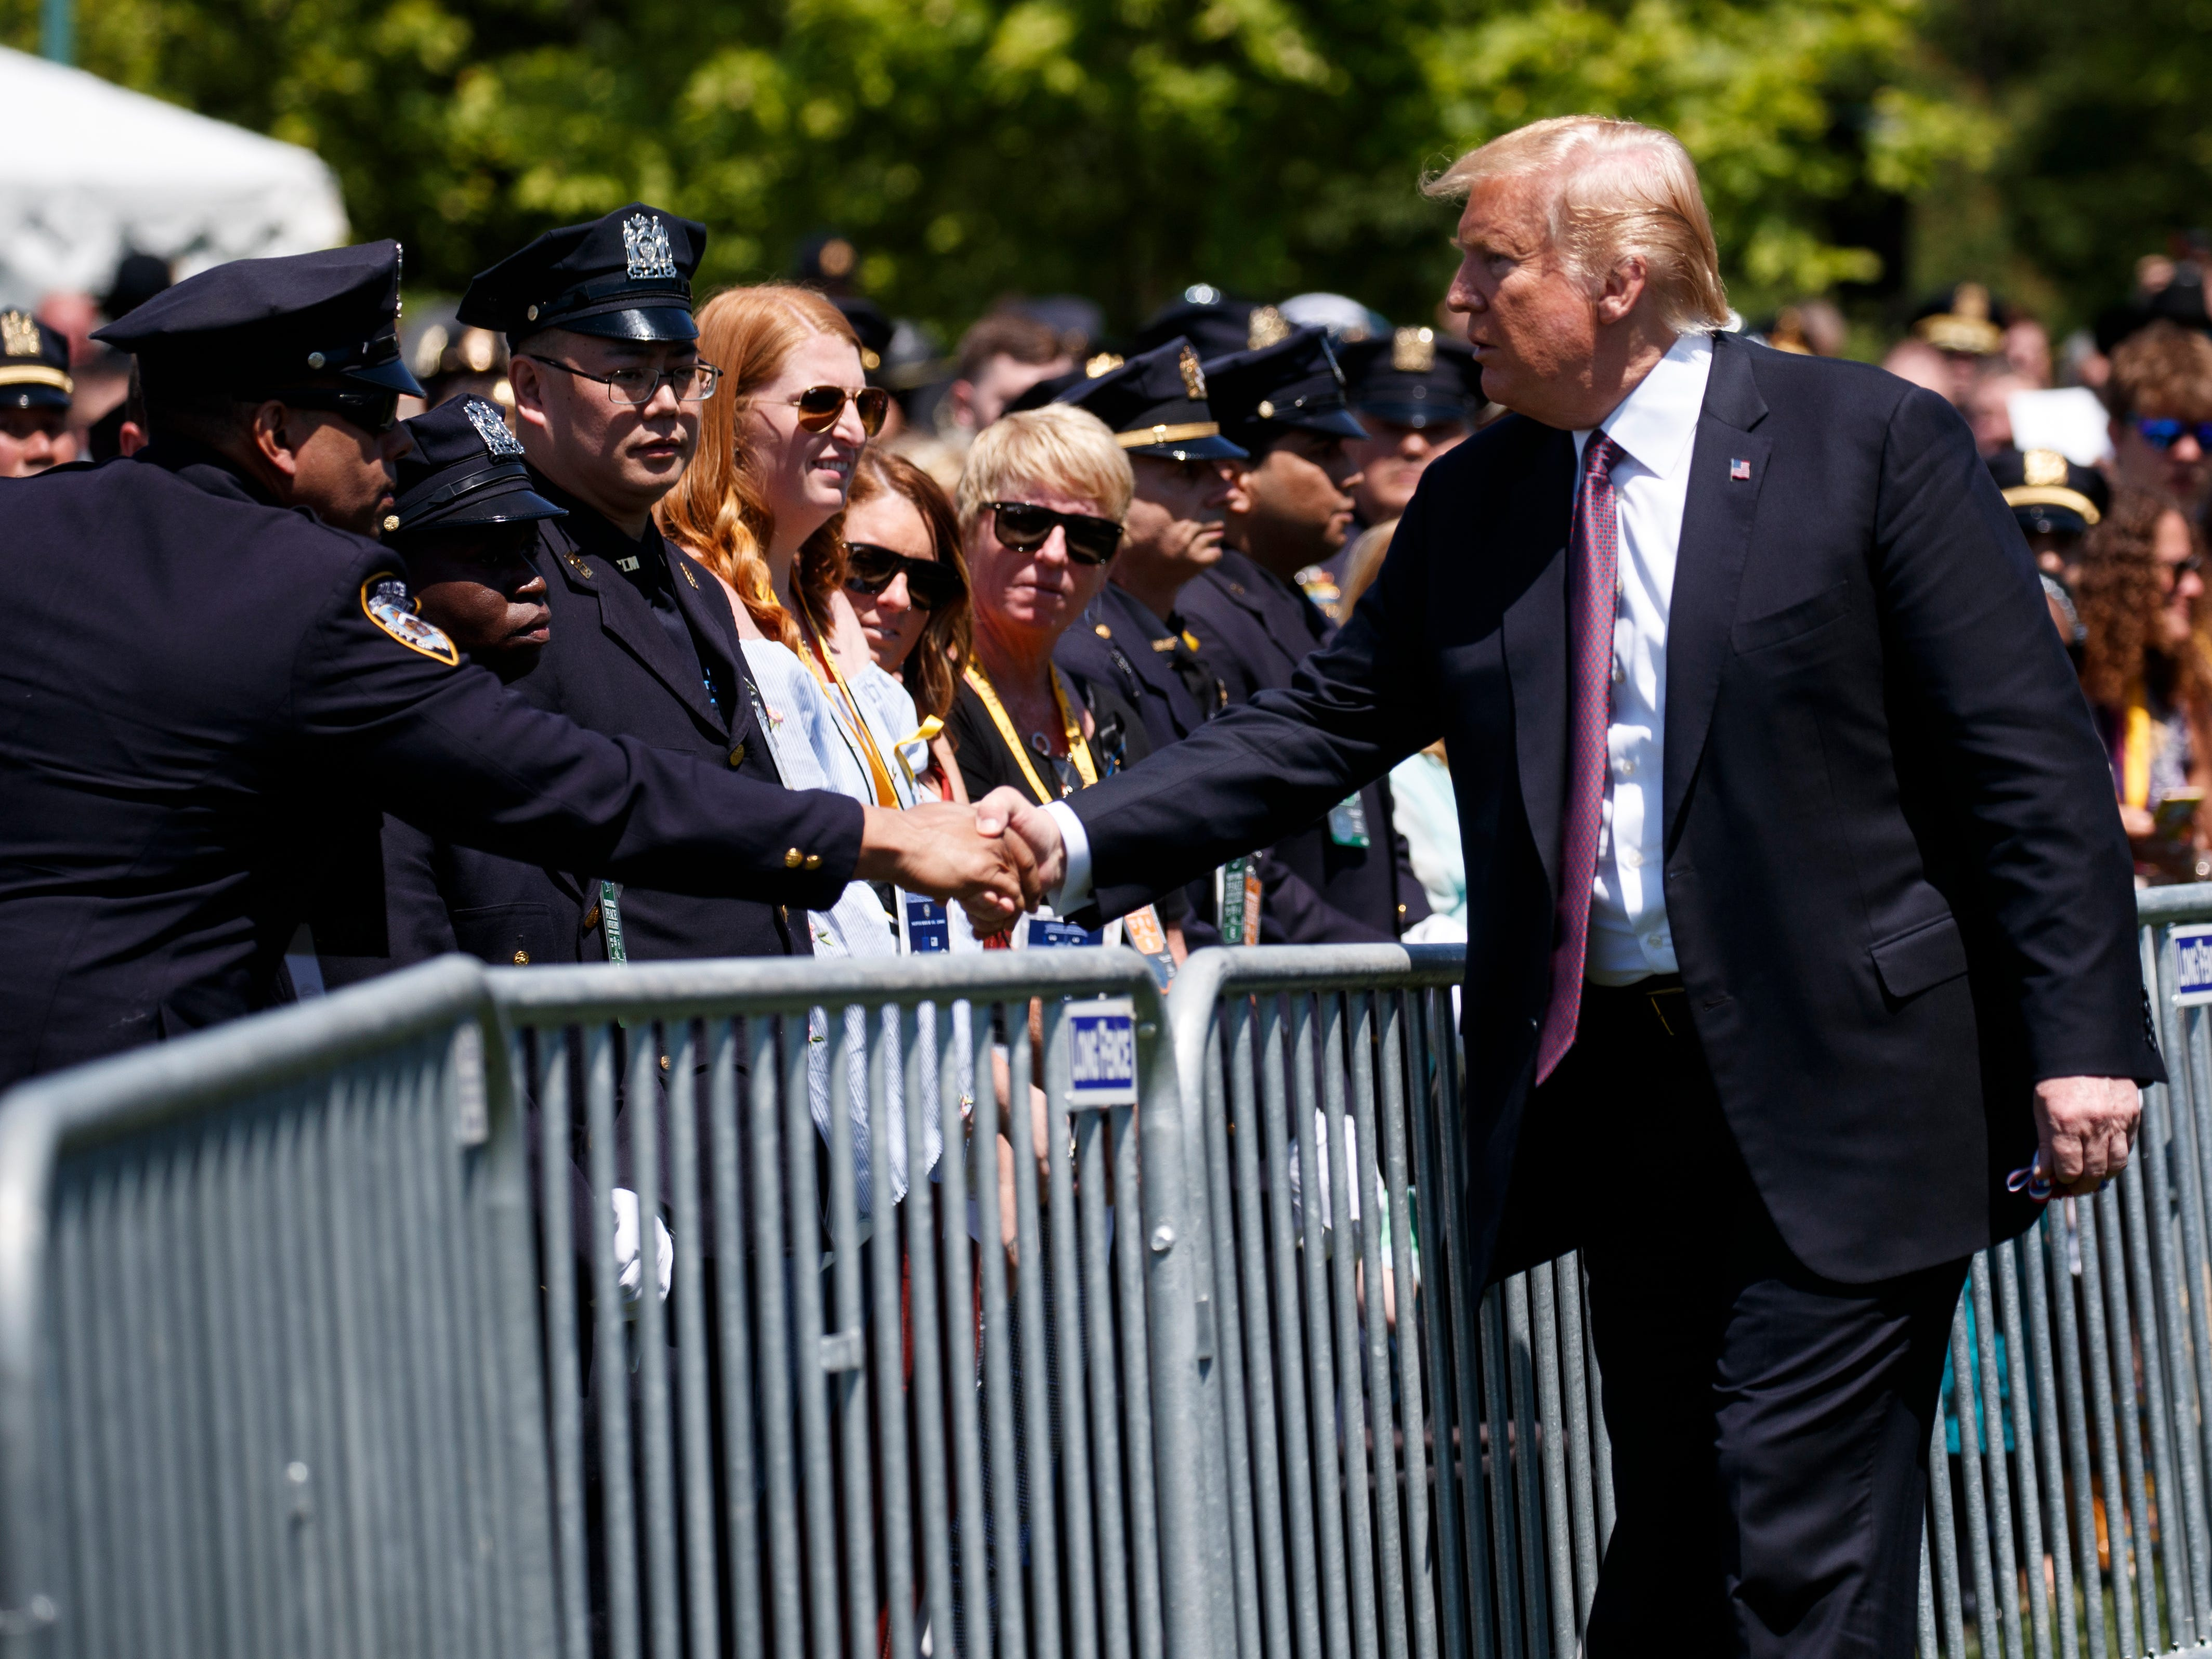 President Donald Trump shakes hands during the 38th Annual National Peace Officers' Memorial Service at the U.S. Capitol, Wednesday, May 15, 2019, in Washington.